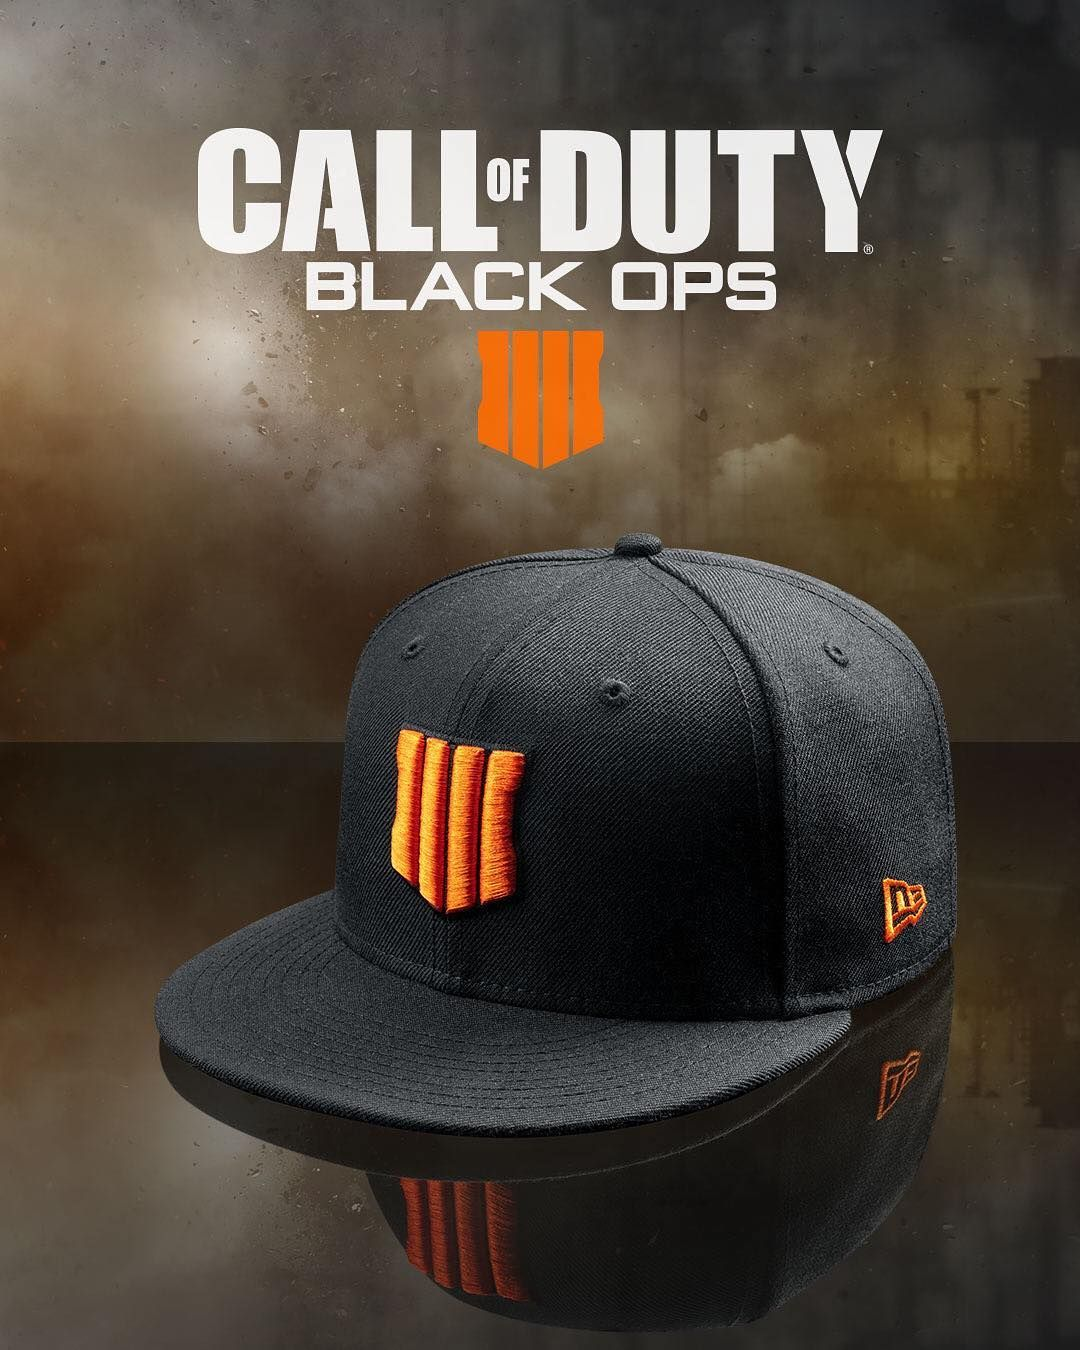 374892f7c62a6 Believe the hype. Limited edition  callofduty Black Ops 4  59FIFTY Fitted  caps are now available at neweracap.com. Quantities are very…